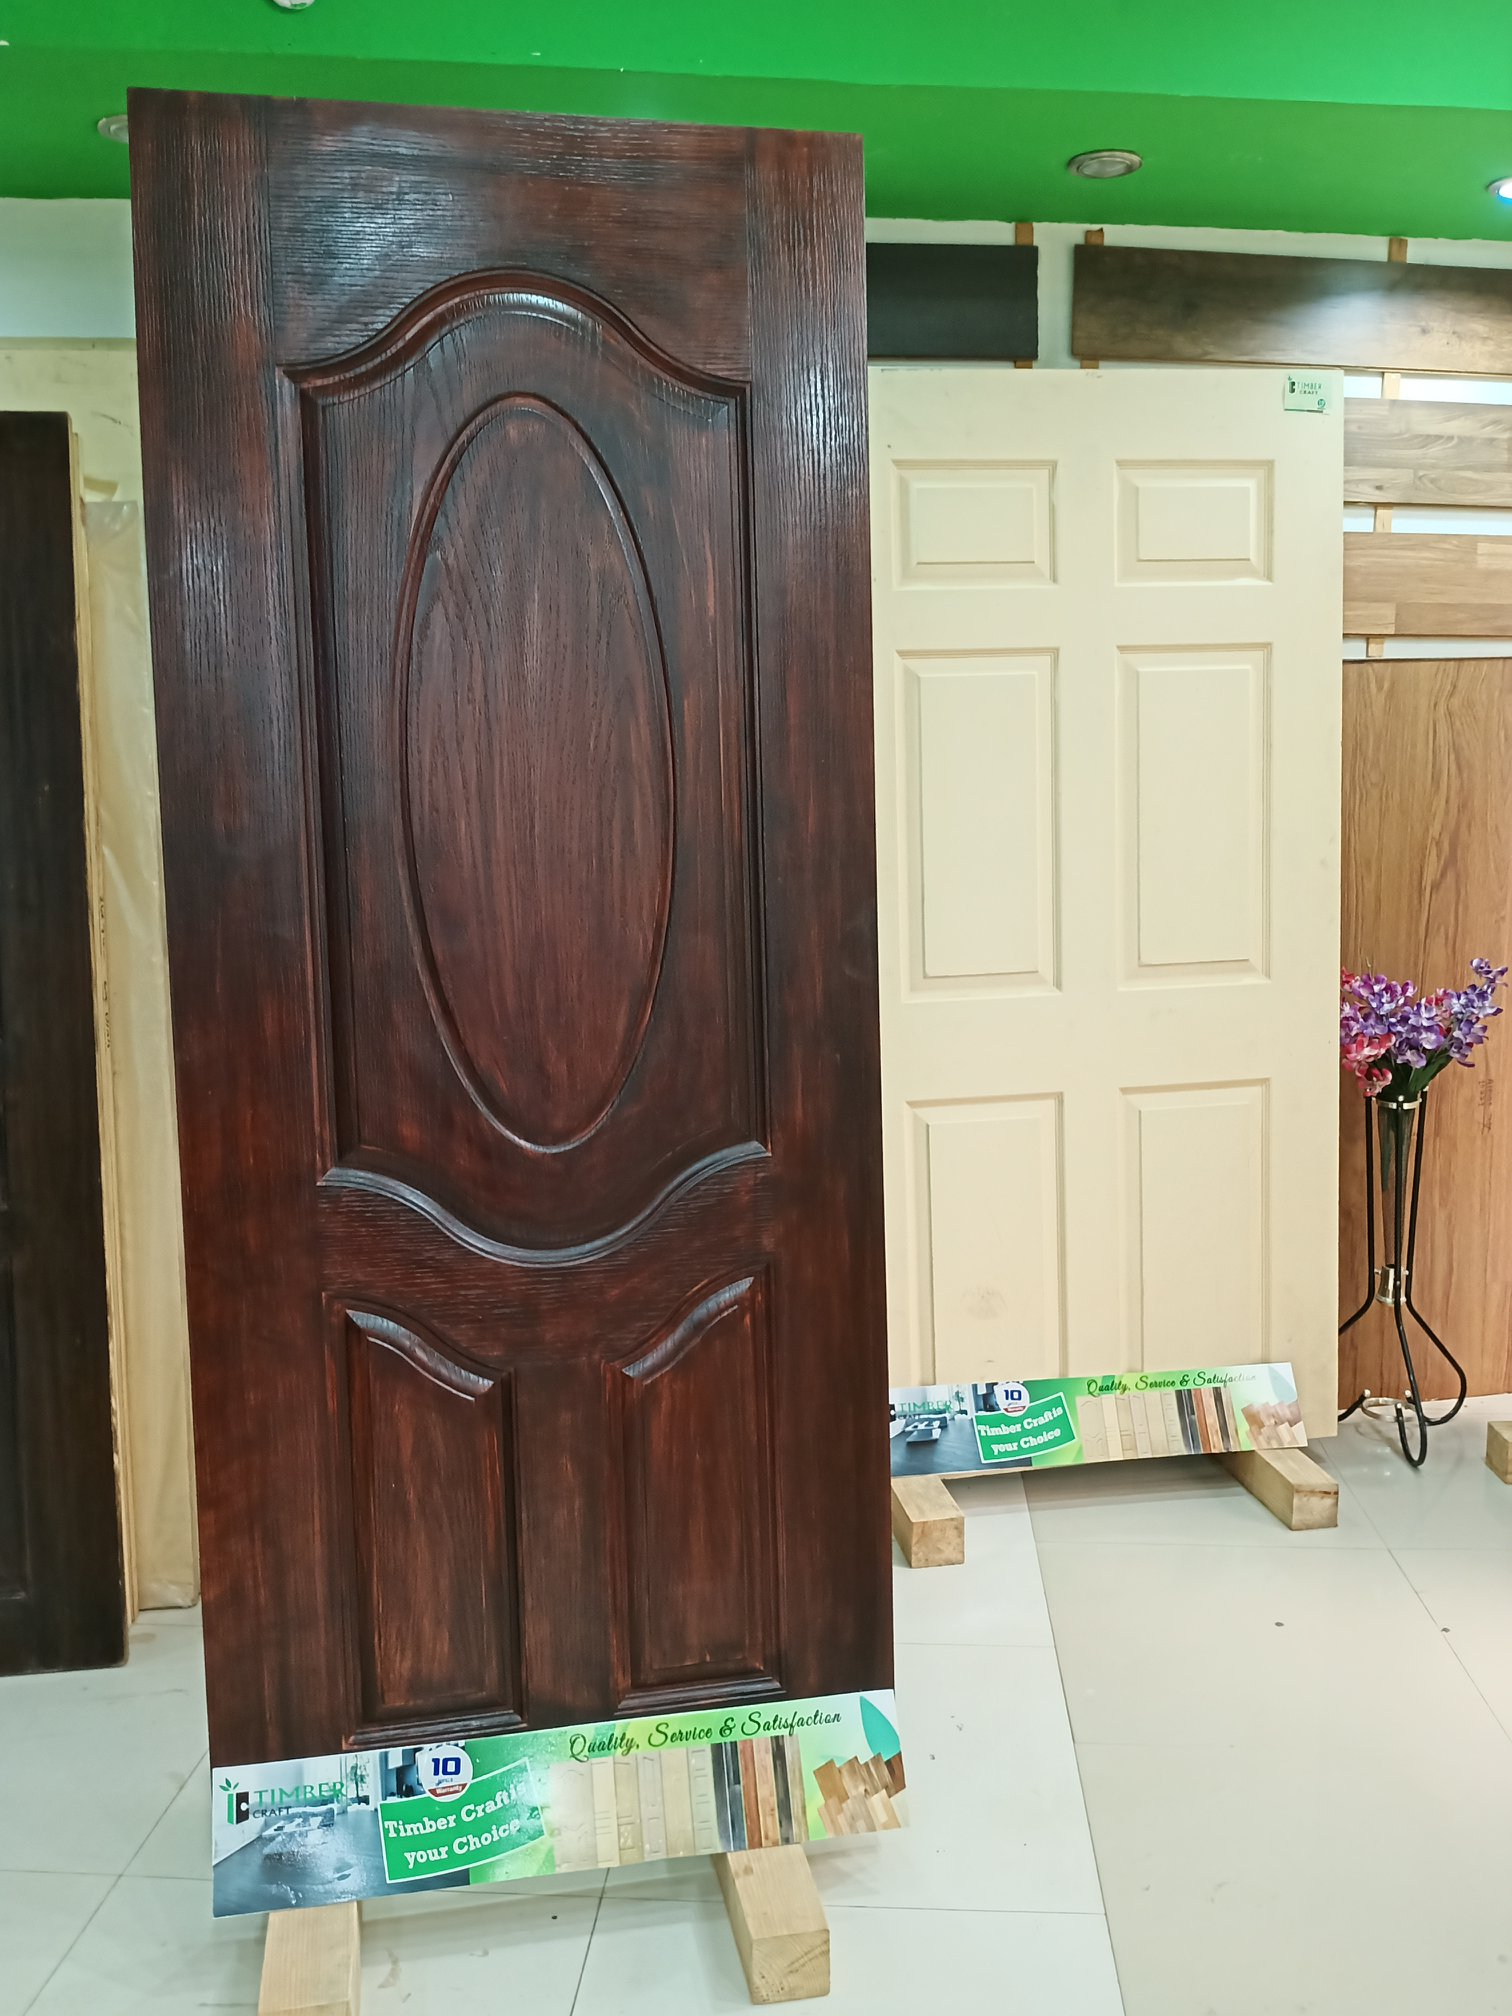 3 Panel Oval Design -Beautiful Oval Classic Timber Craft  exterior  door design for bath room ,balcony and interior .